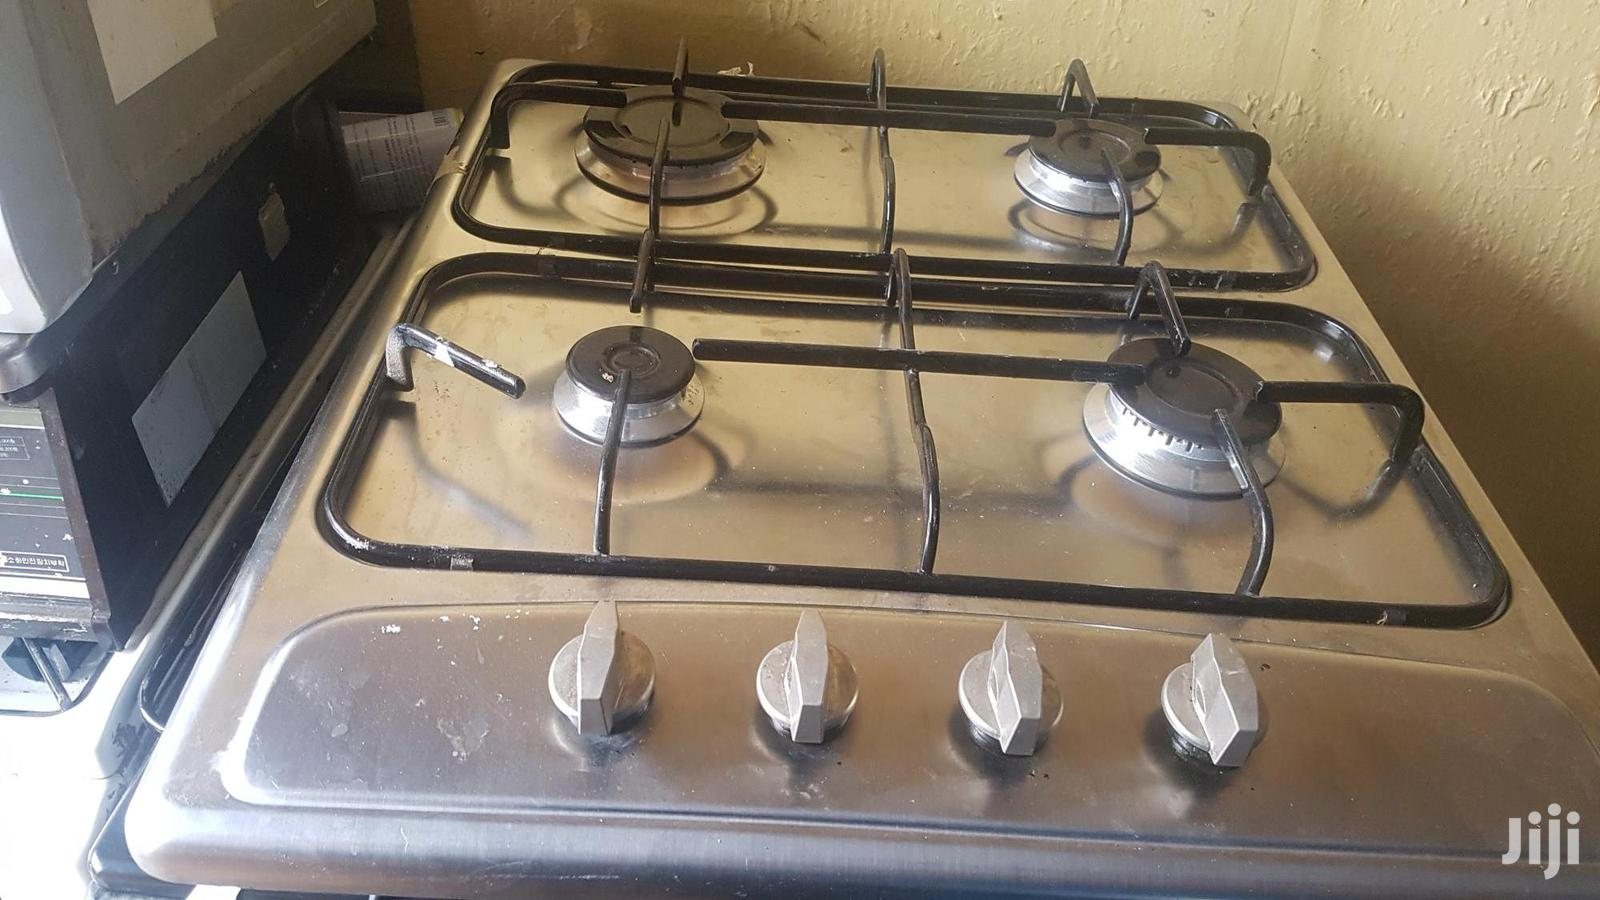 UK Used Table Top Gas Cooker   Kitchen Appliances for sale in Lagos State, Nigeria